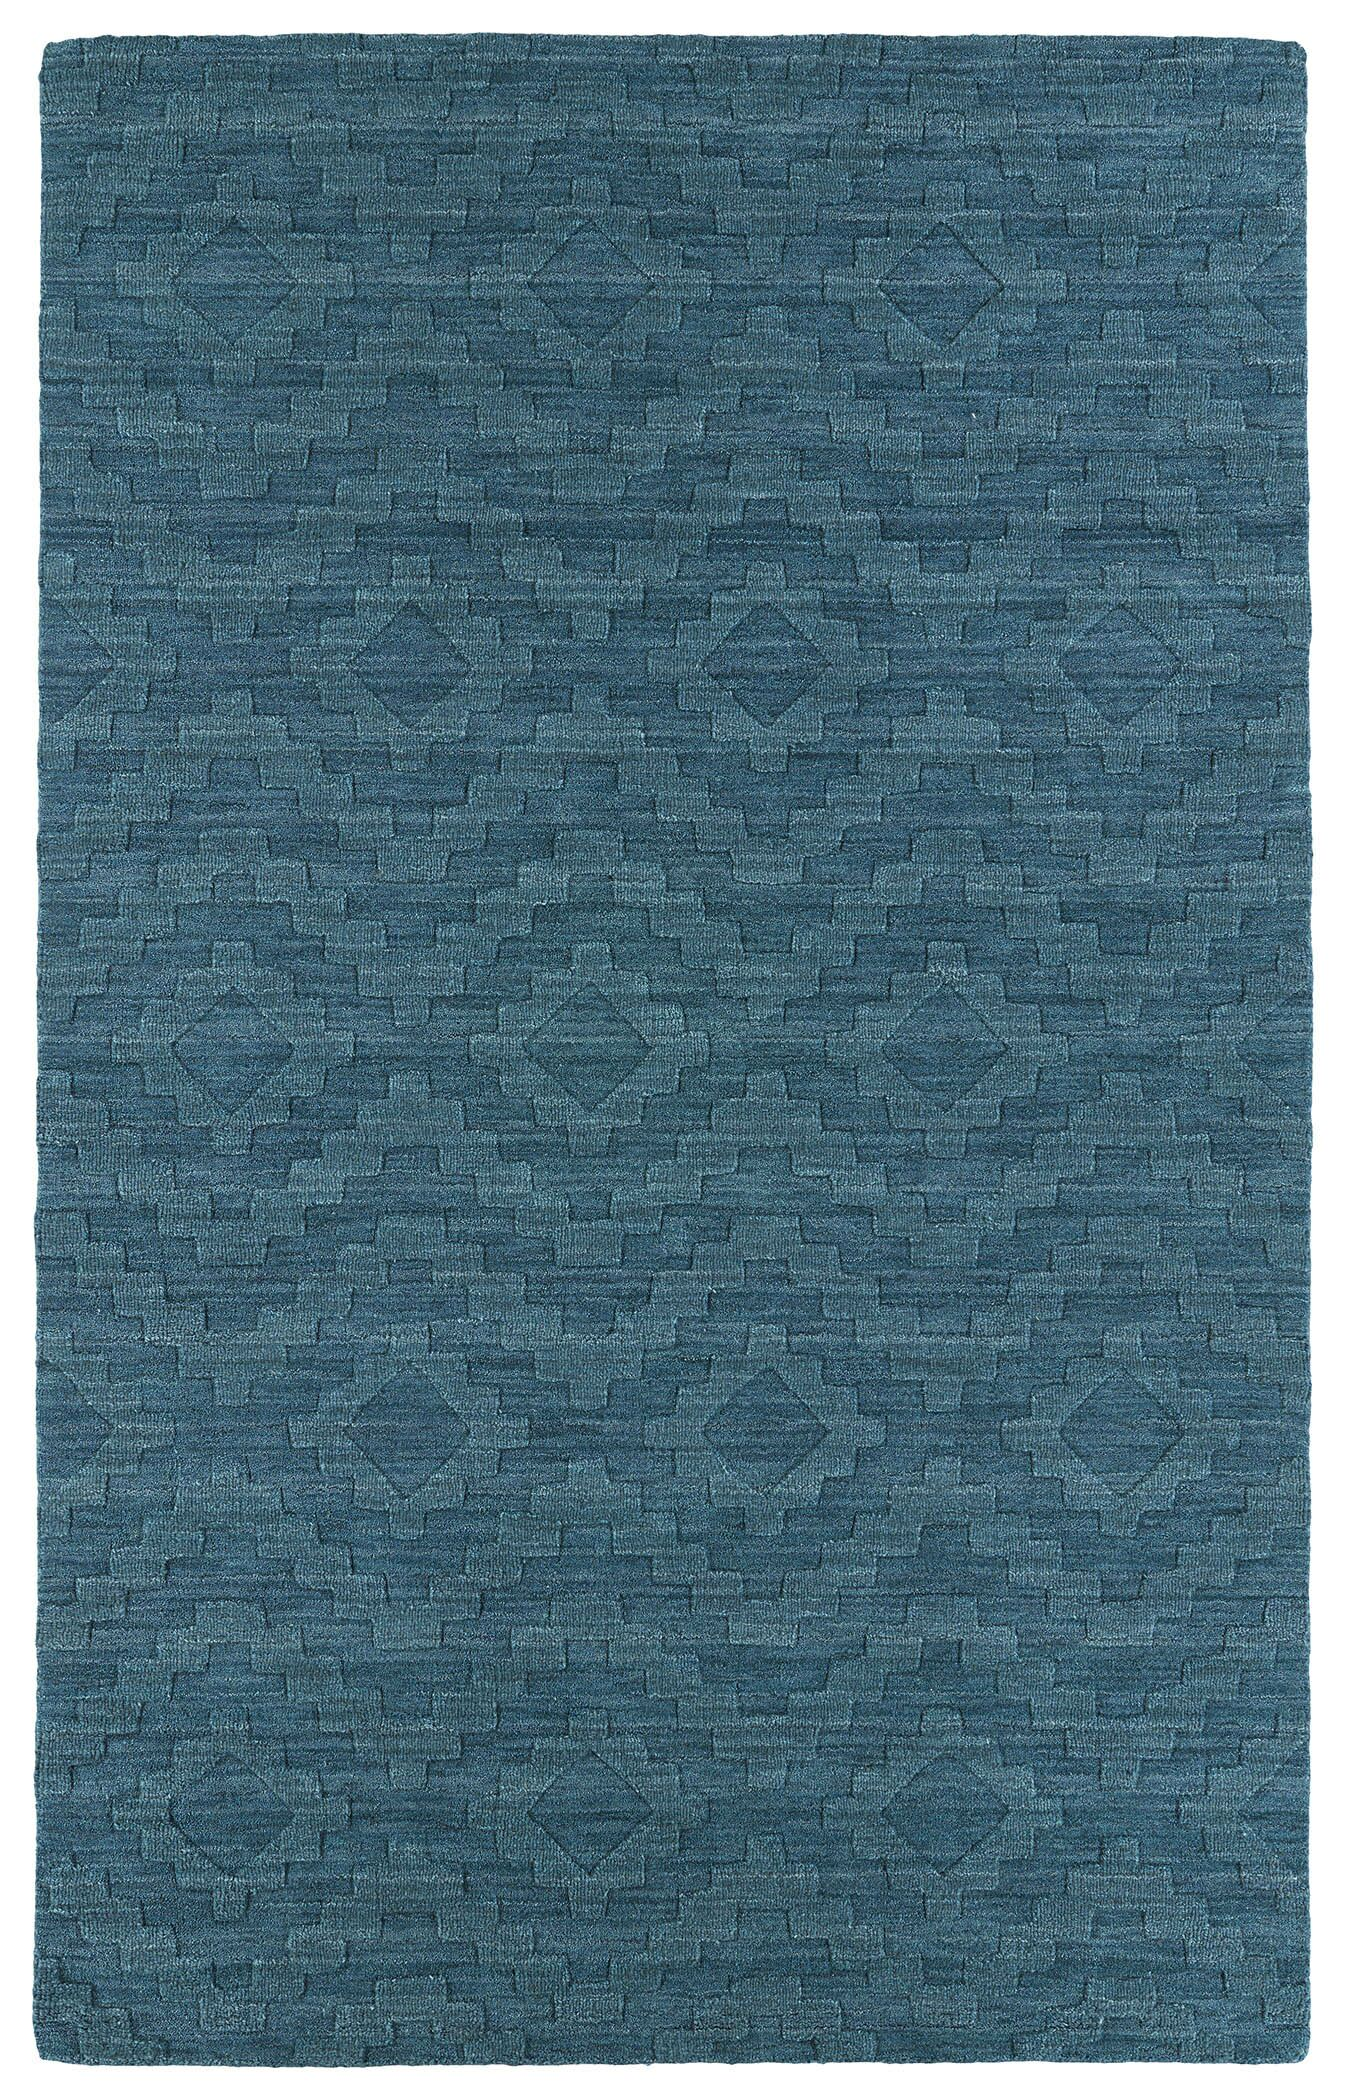 Dobson Tufted Turquoise Geometric Area Rug Rug Size: Rectangle 8' x 11'